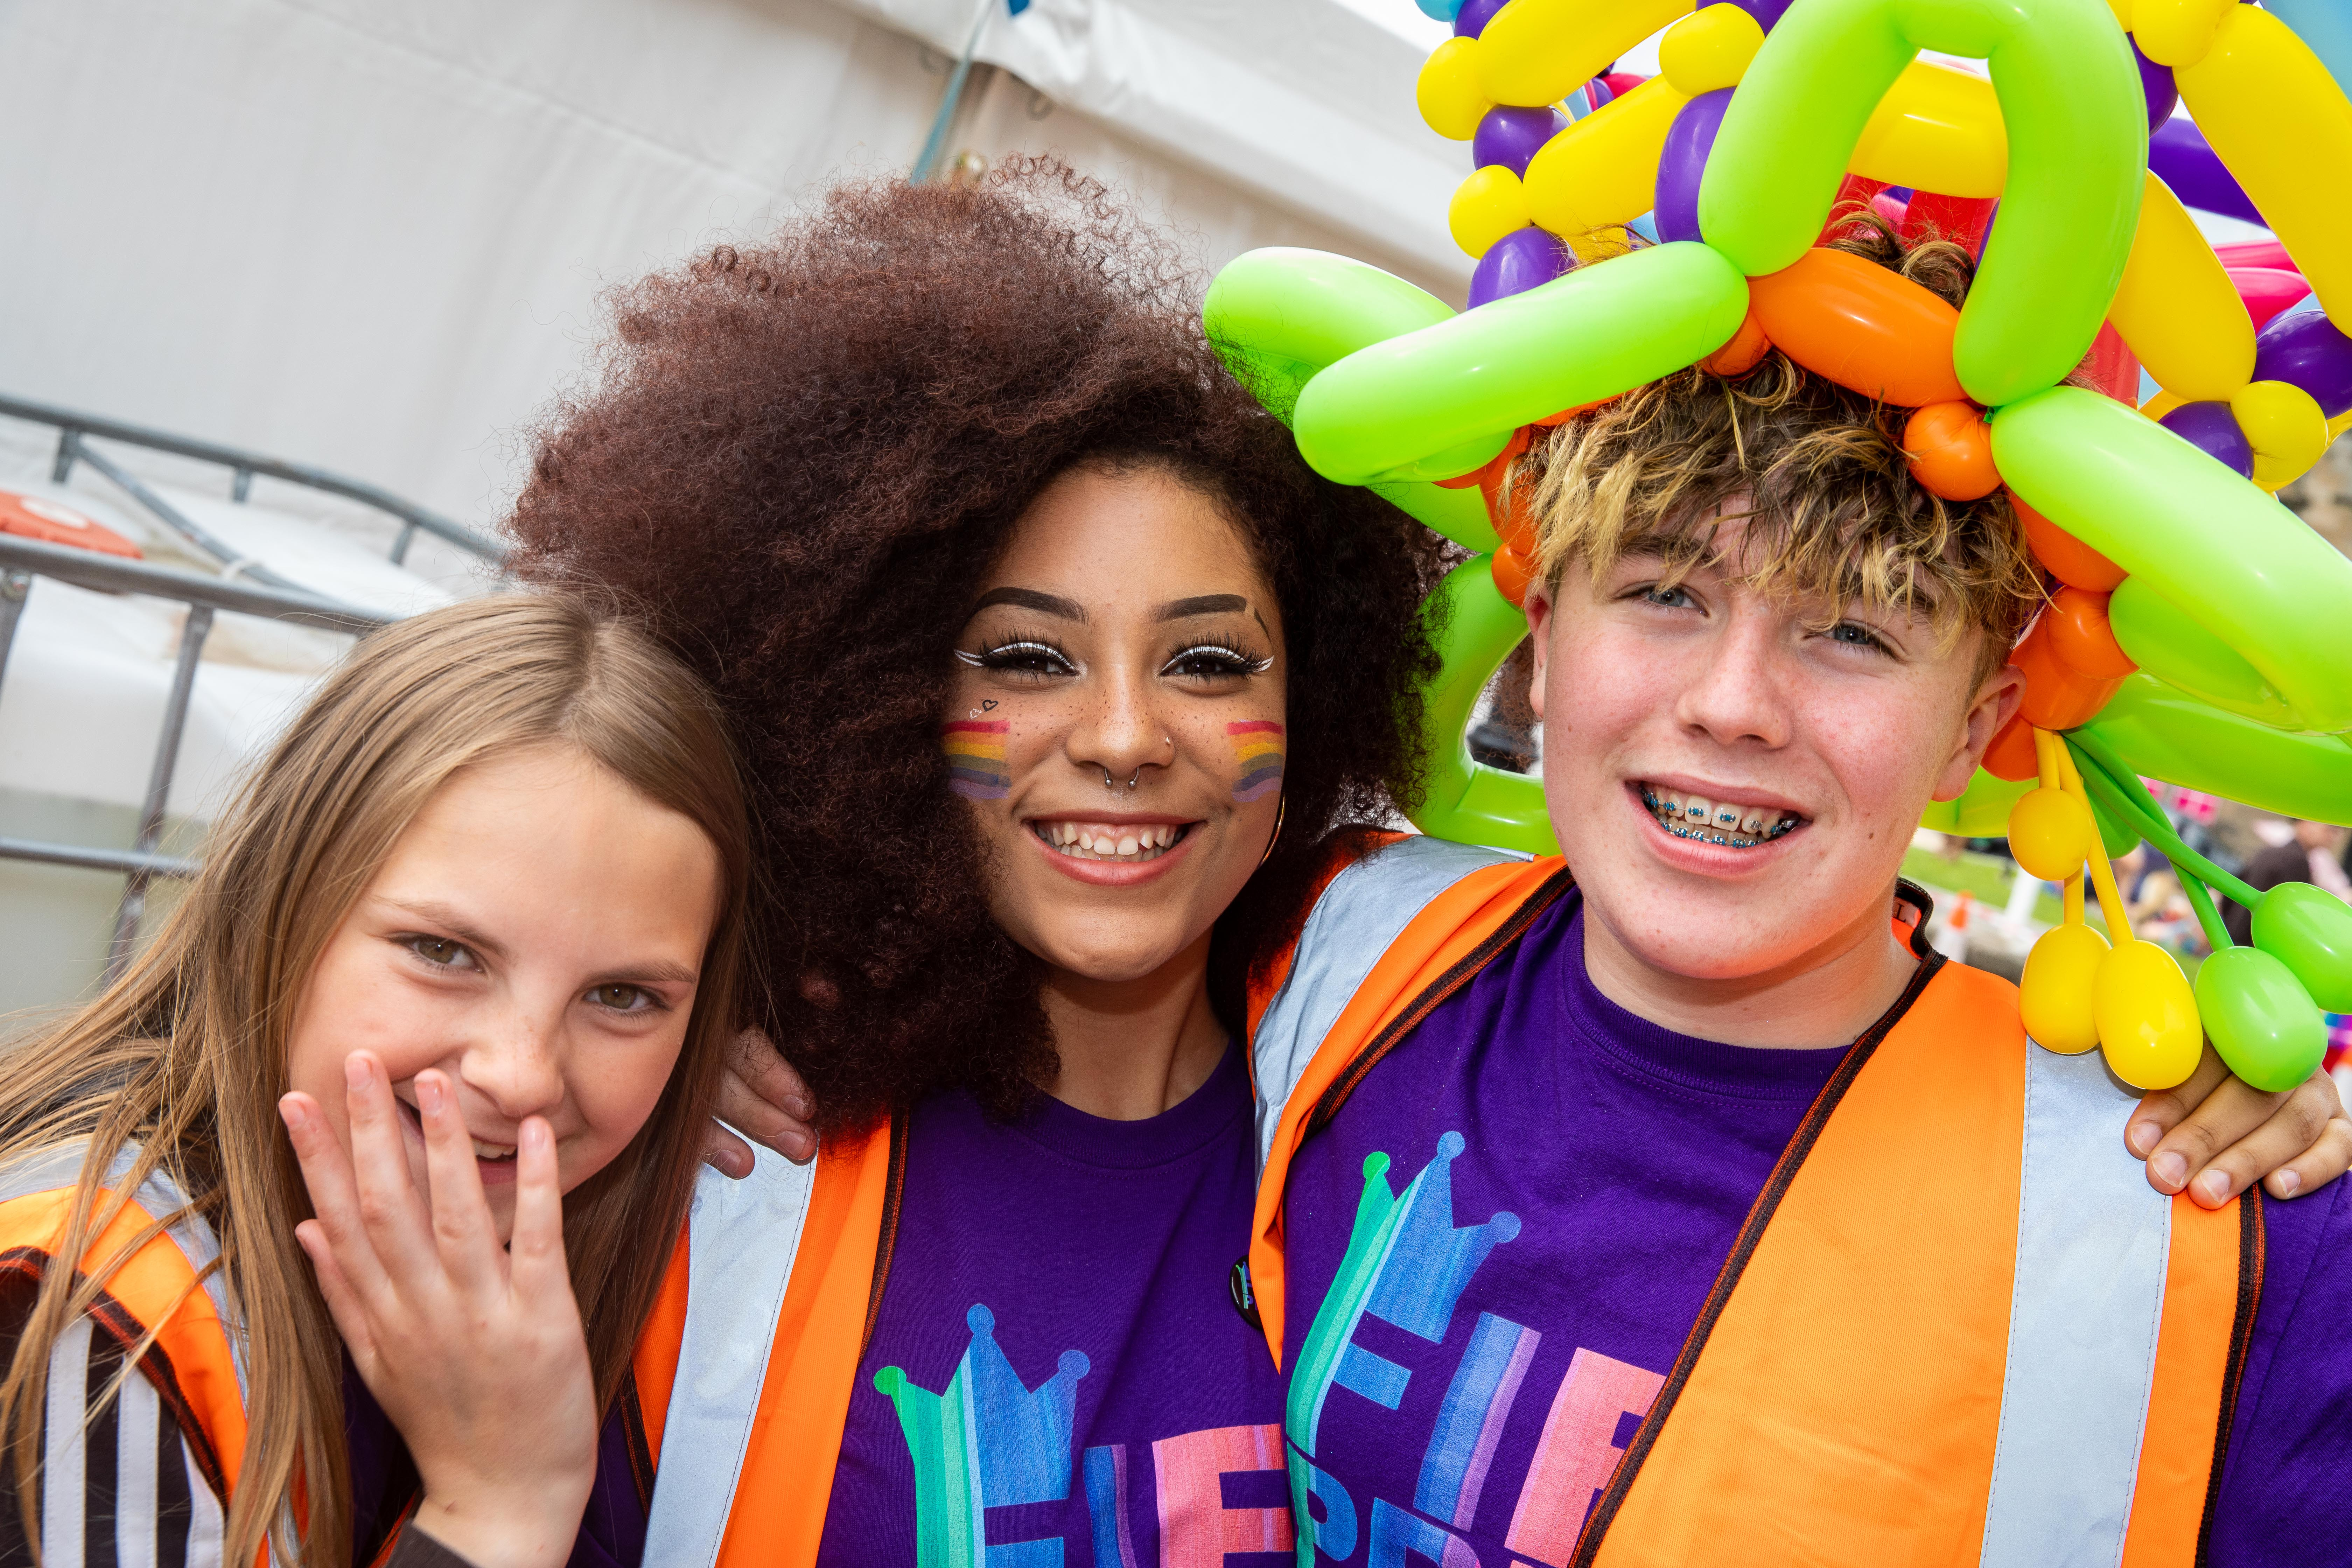 Volunteers Nicole Allan (13), Megan Hall (16) and Arron Kennedy (13) all colourful at Pride in Kirkcaldy.